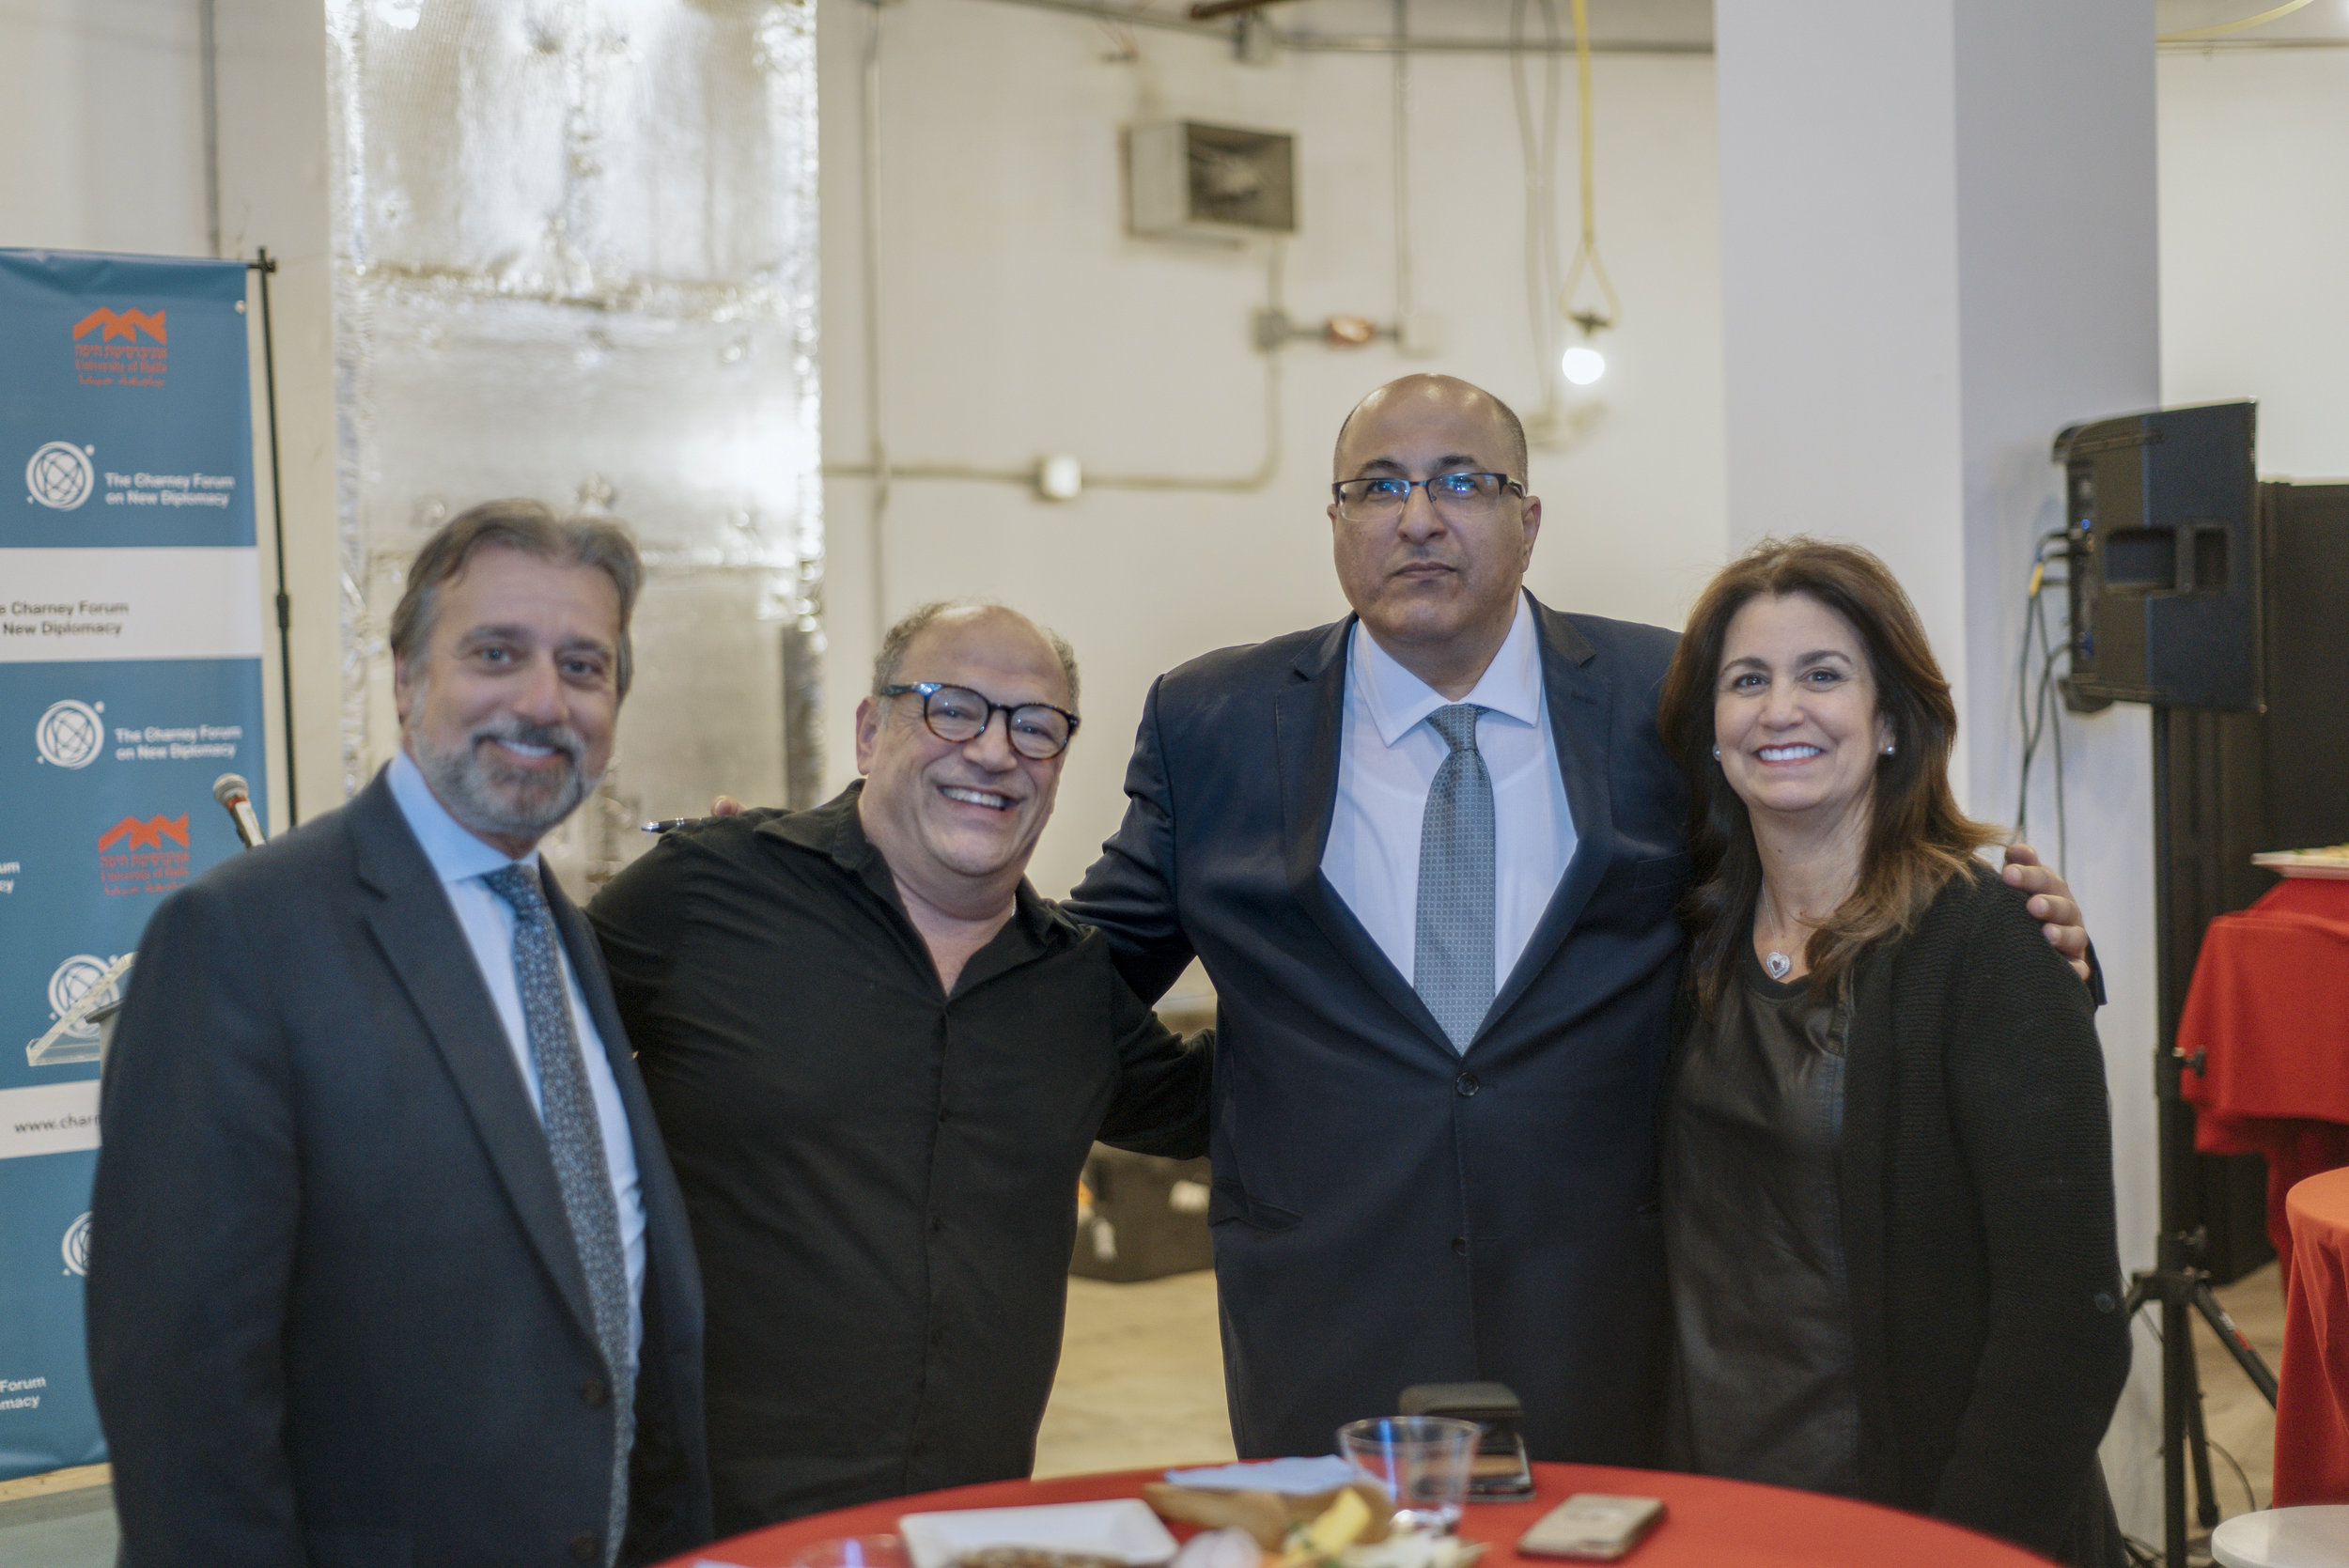 Ido Aharoni and guests